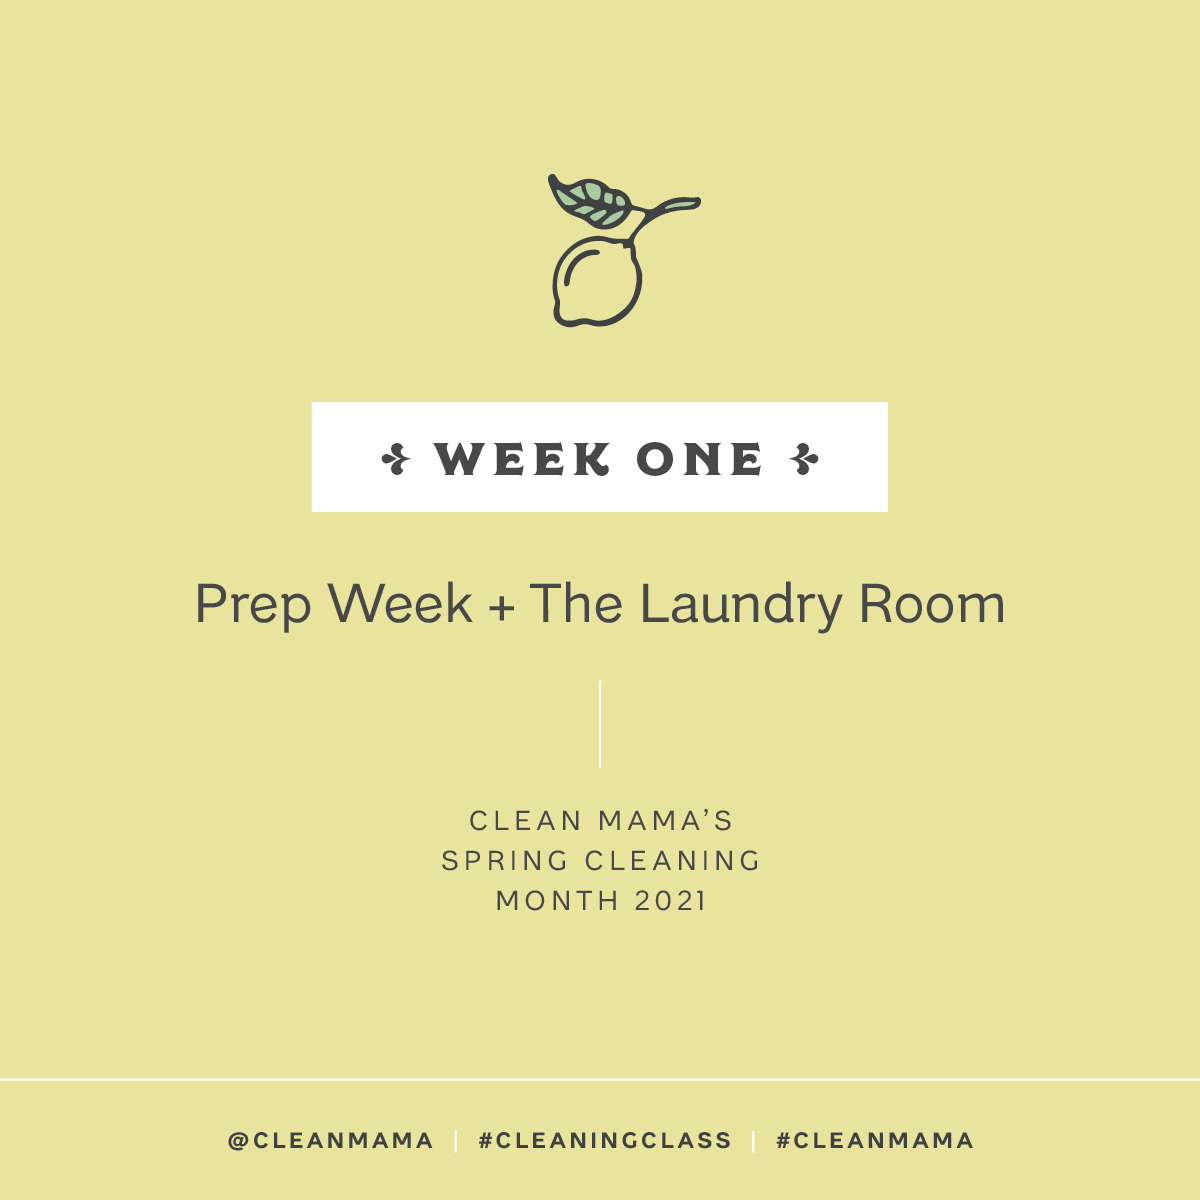 Prep Week + Laundry Room – Clean Mama